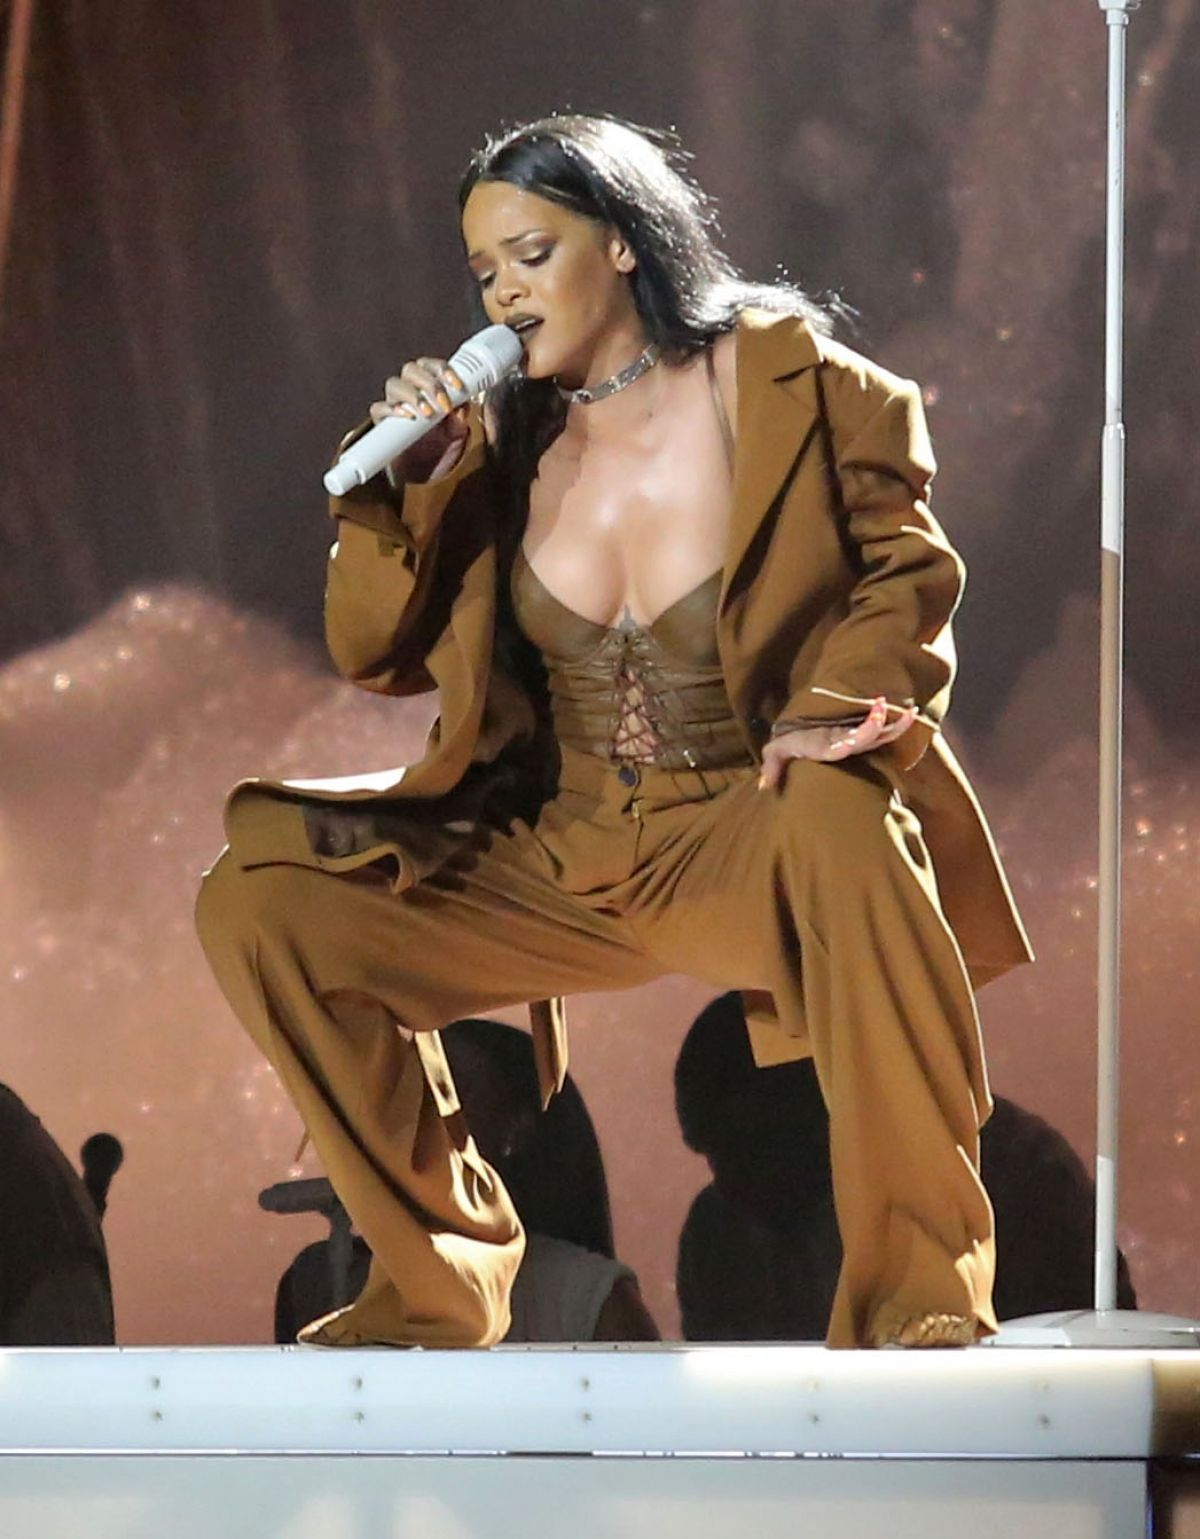 rihanna-performing-at-rogers-arena-in-vancouver_1